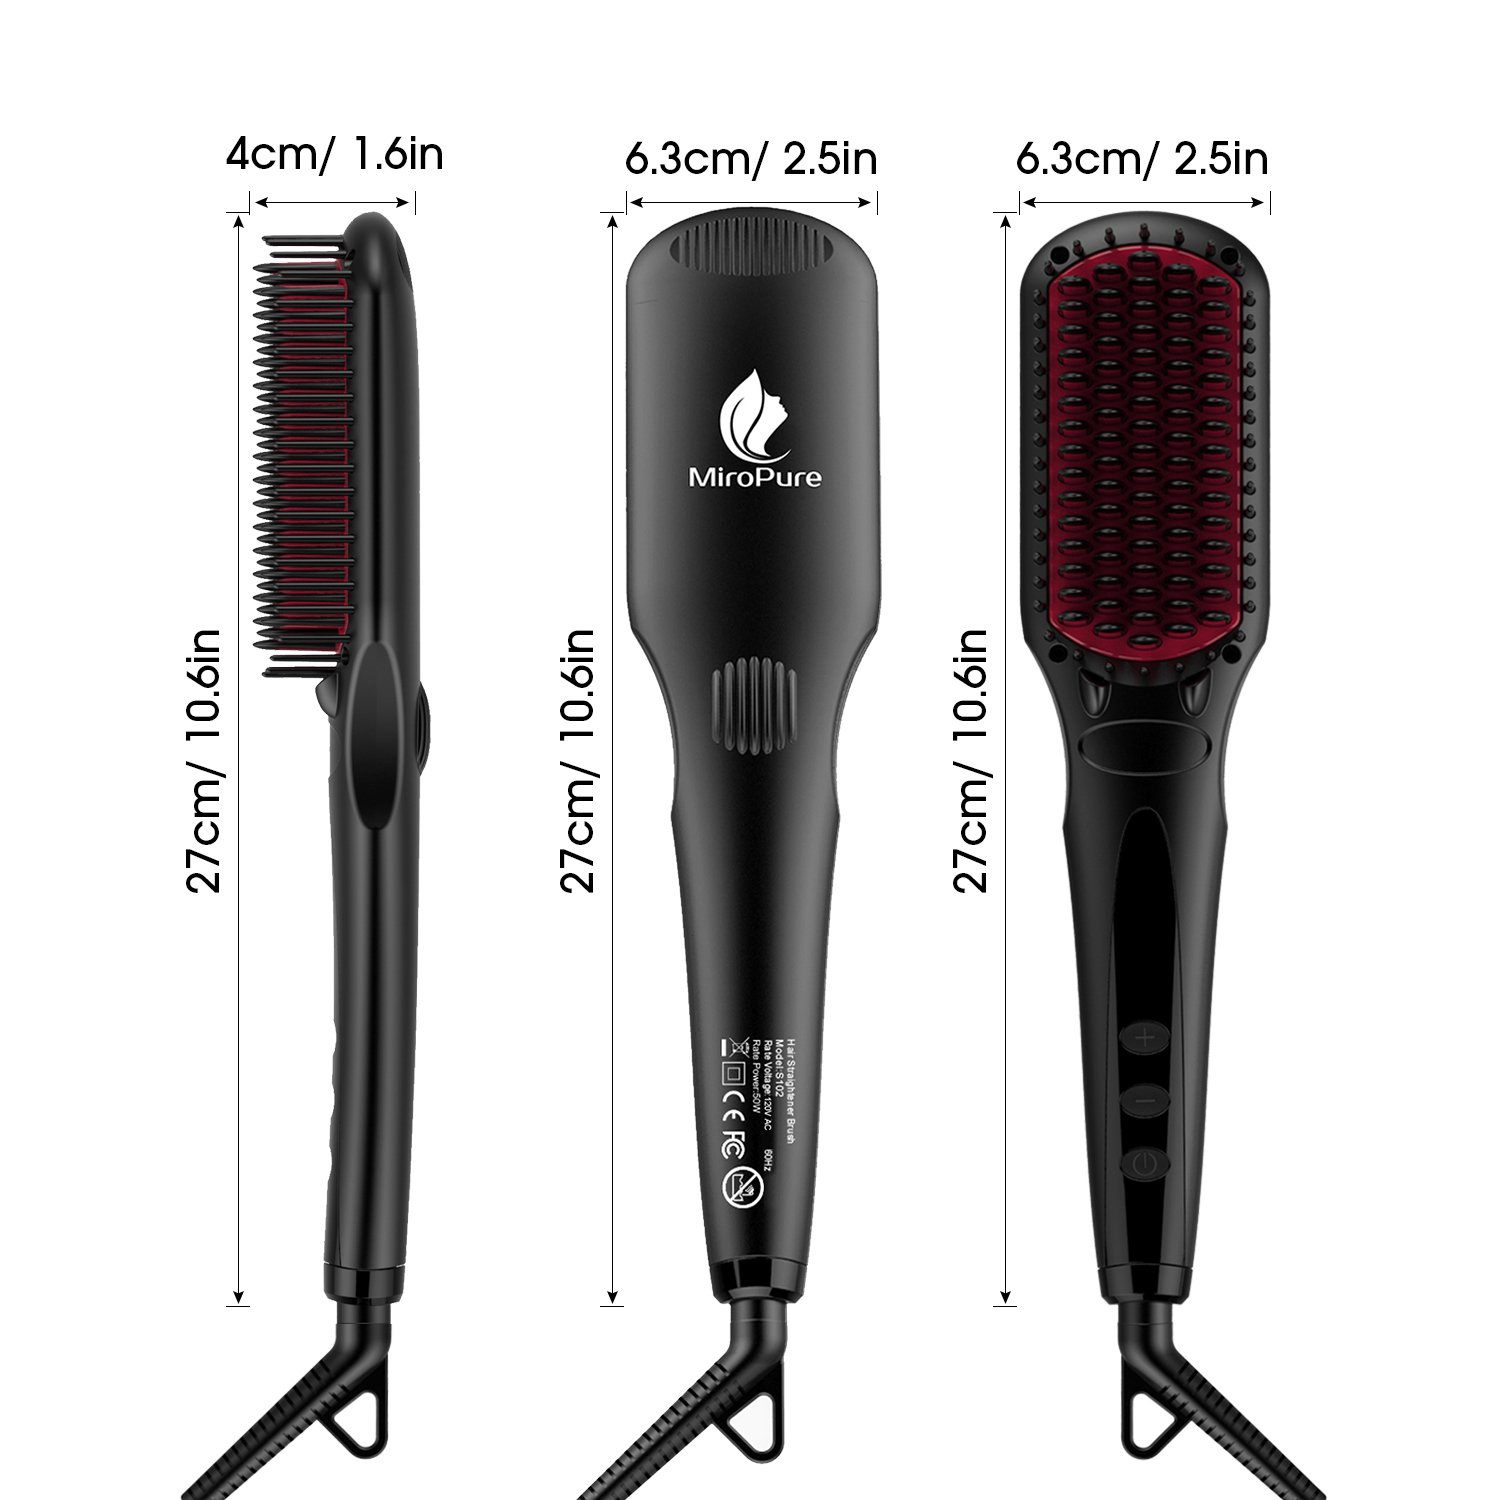 Enhanced Hair Straightener Brush by MiroPure, 2-in-1 Ionic Straightening Brush with Anti-Scald Feature, Auto Temperature Lock and Auto-off Function (Black) by MiroPure (Image #8)